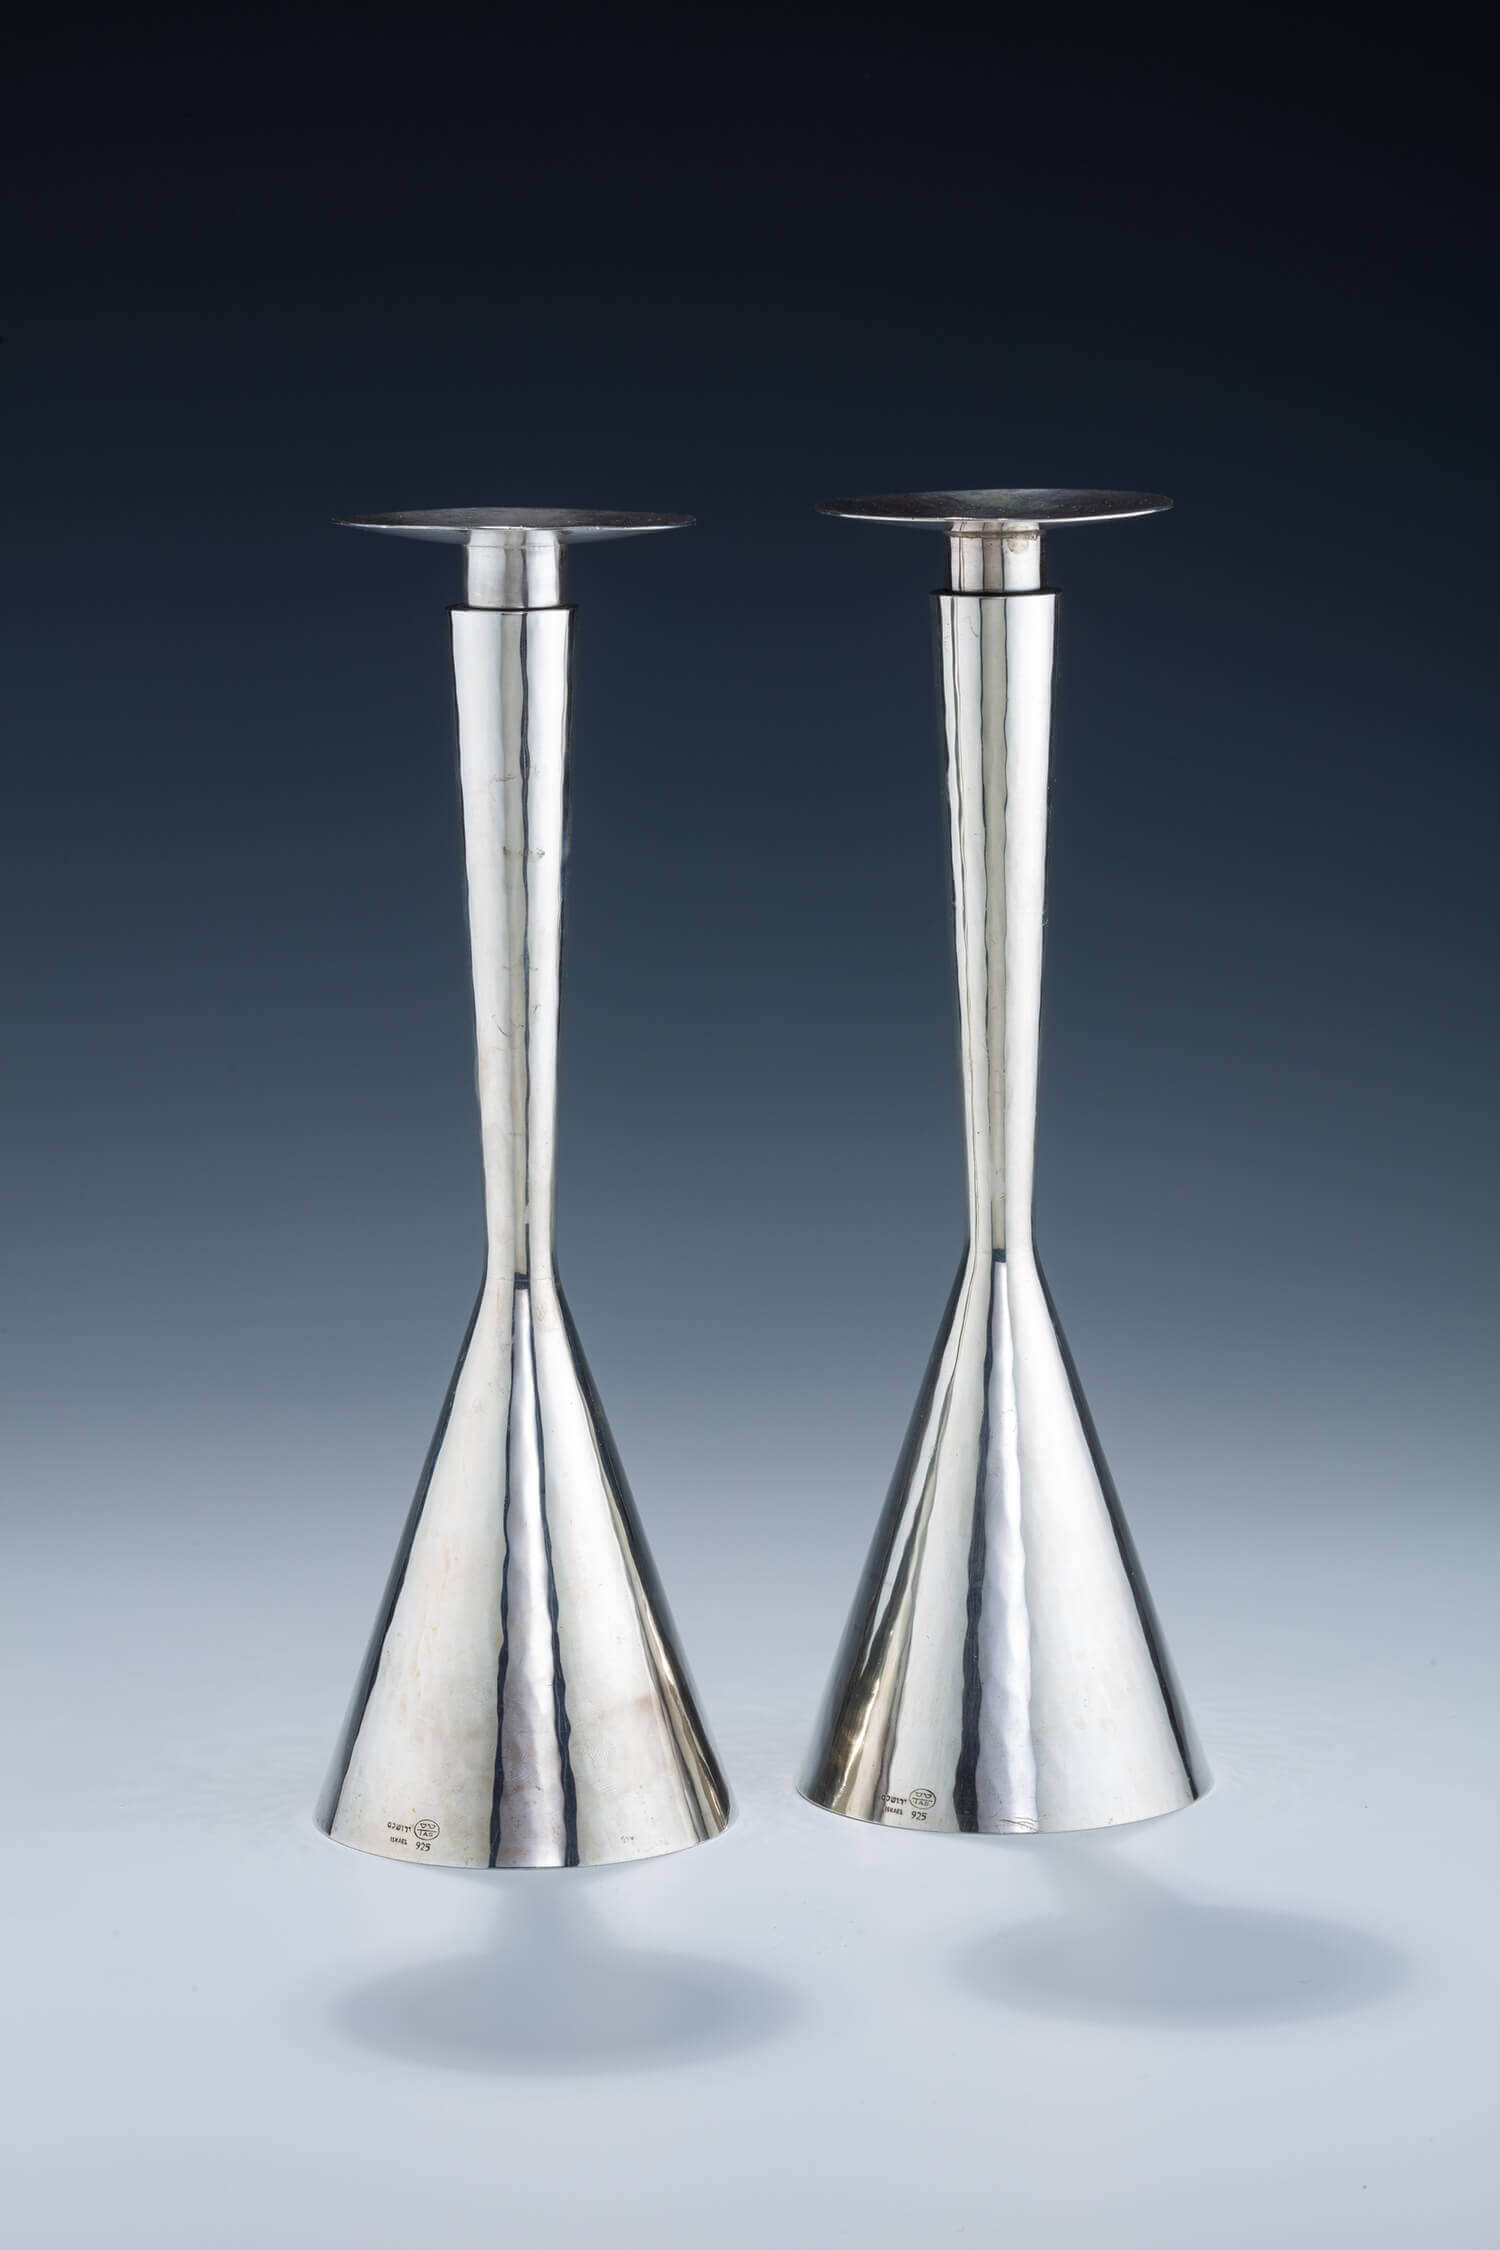 093.  A PAIR OF STERLING SILVER CANDLESTICKS BY TAS WORKSHOP